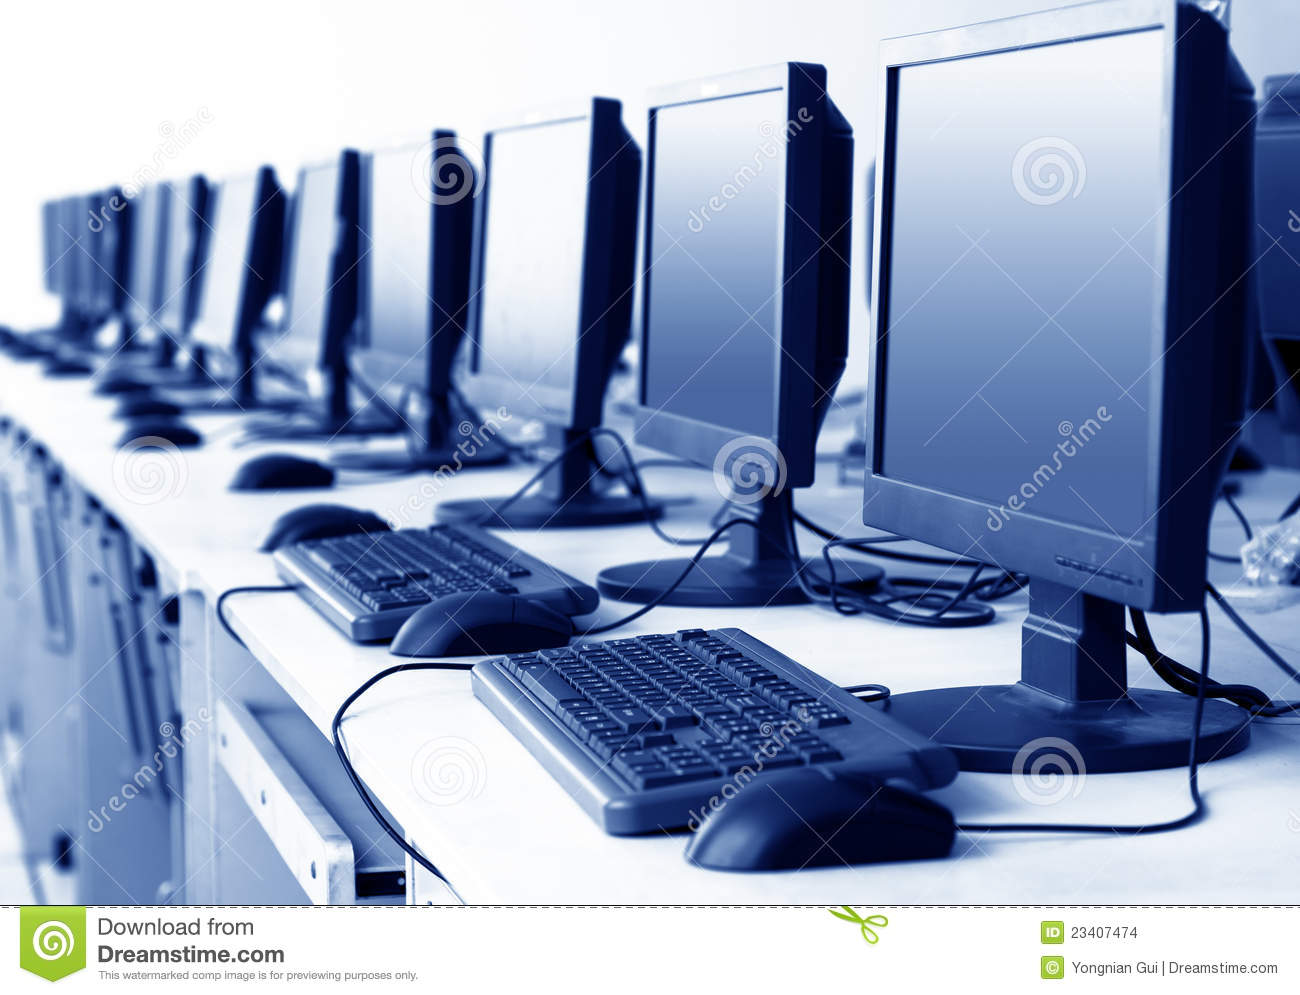 Computer Lab Stock Photos - Image: 3261973